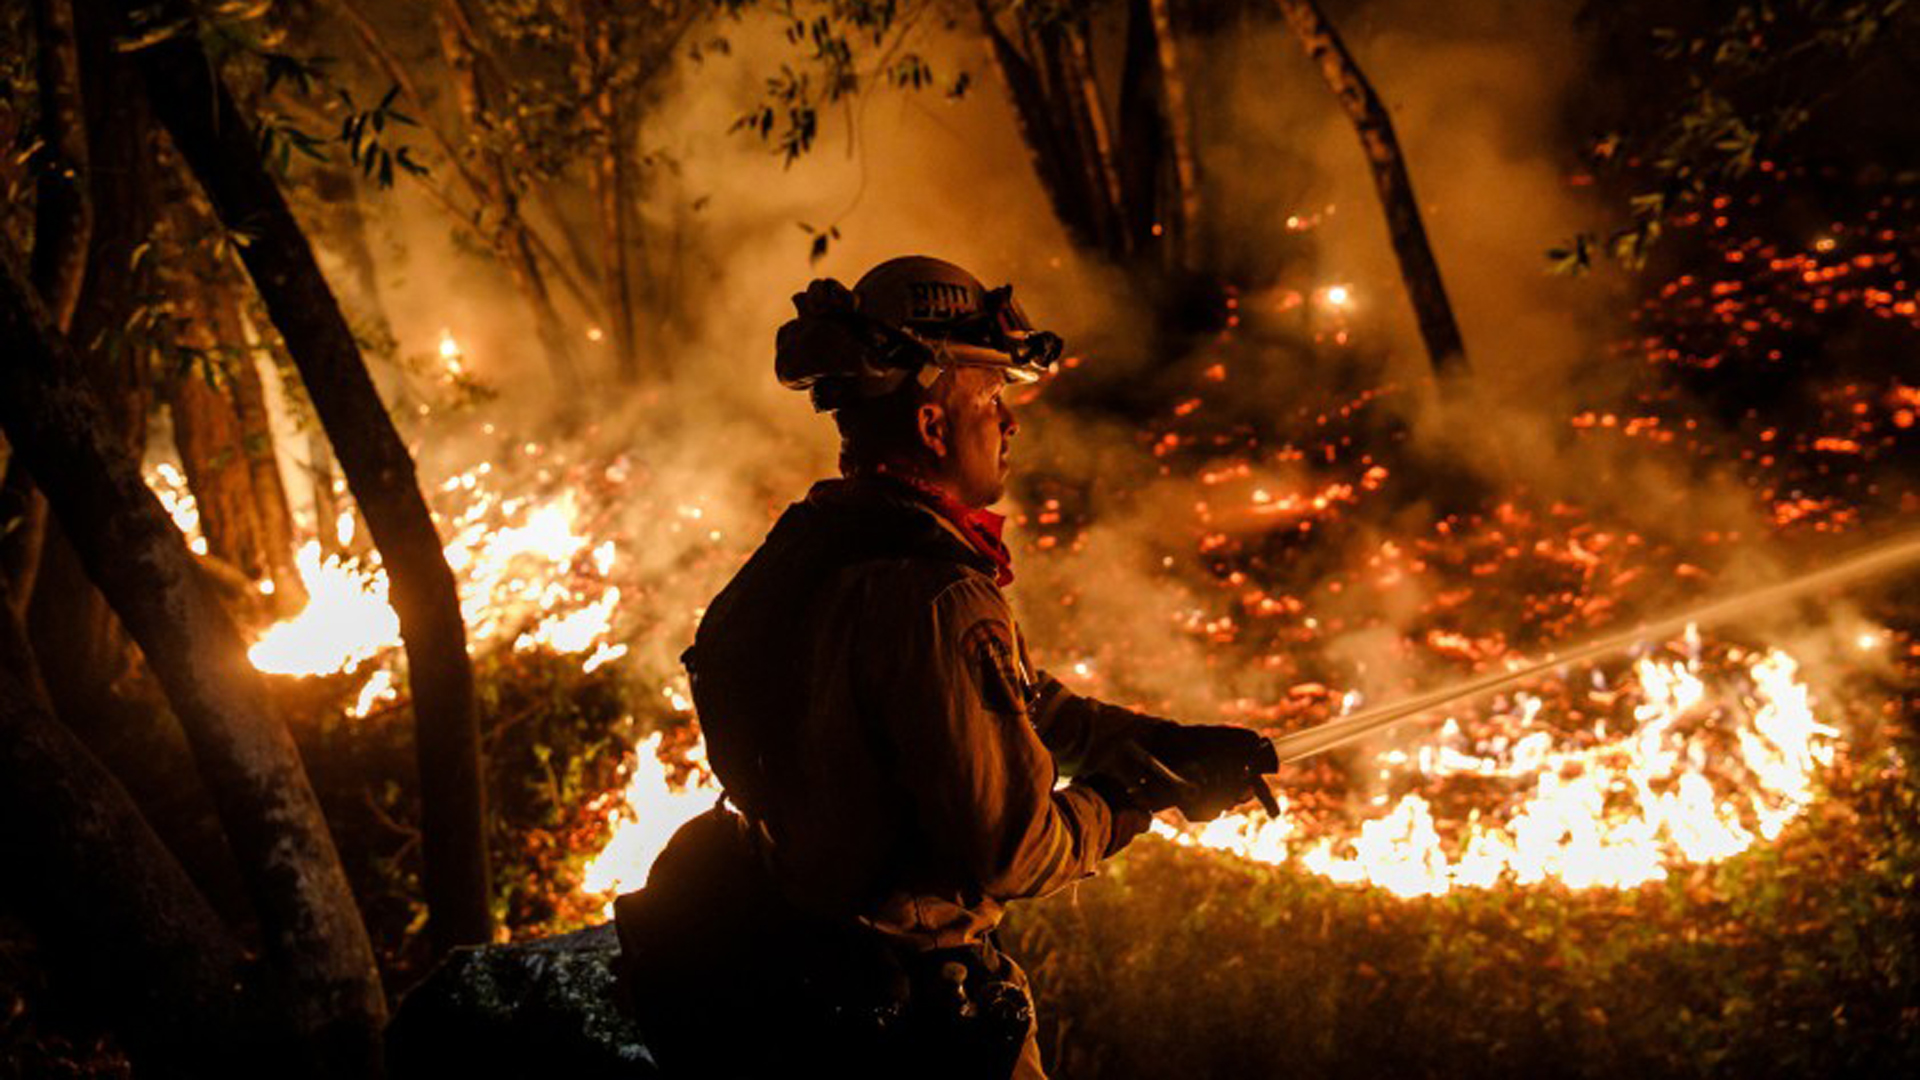 In the aftermath of the government shutdown, the Interior Department has struggled to hire seasonal firefighters.(Credit: Marcus Yam / Los Angeles Times)